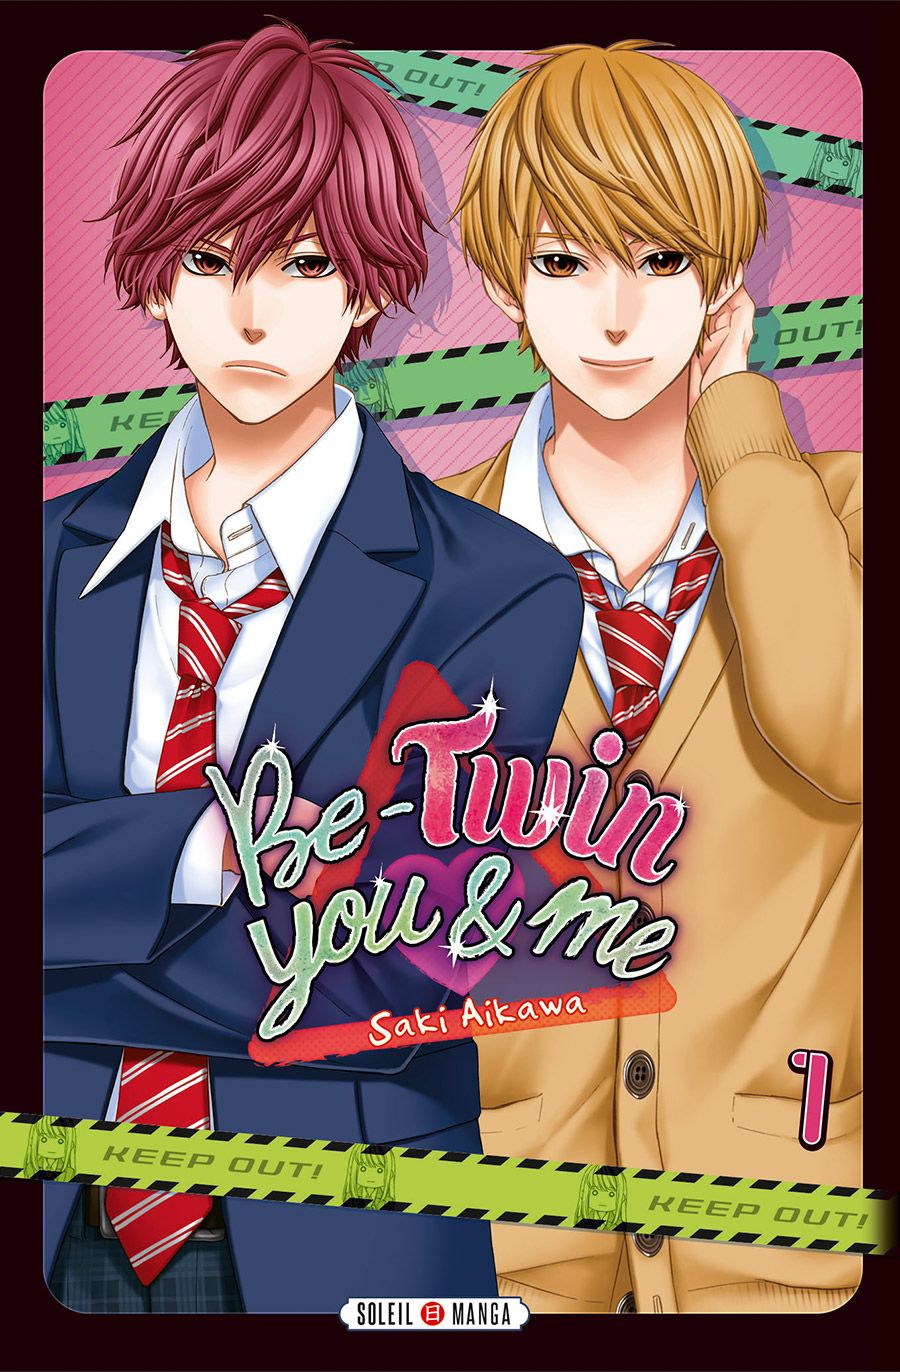 Be-Twin you & me 1